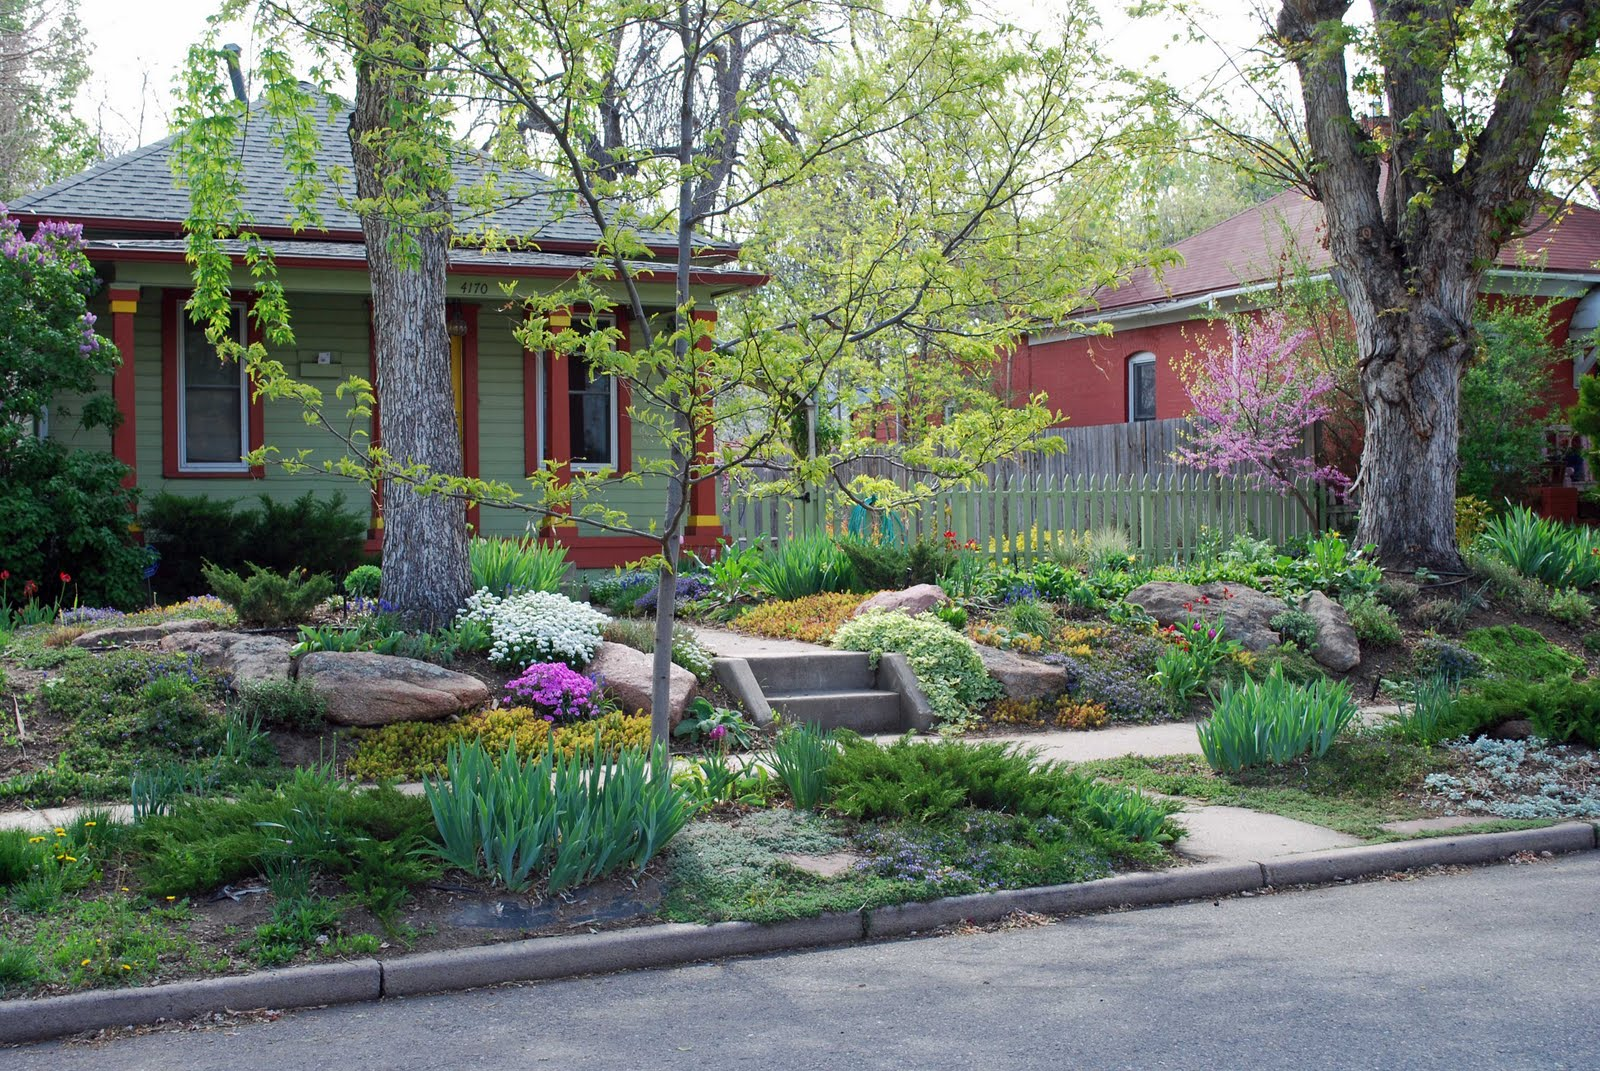 The art garden garden designers roundtable lawn alternatives for Landscaping your front yard